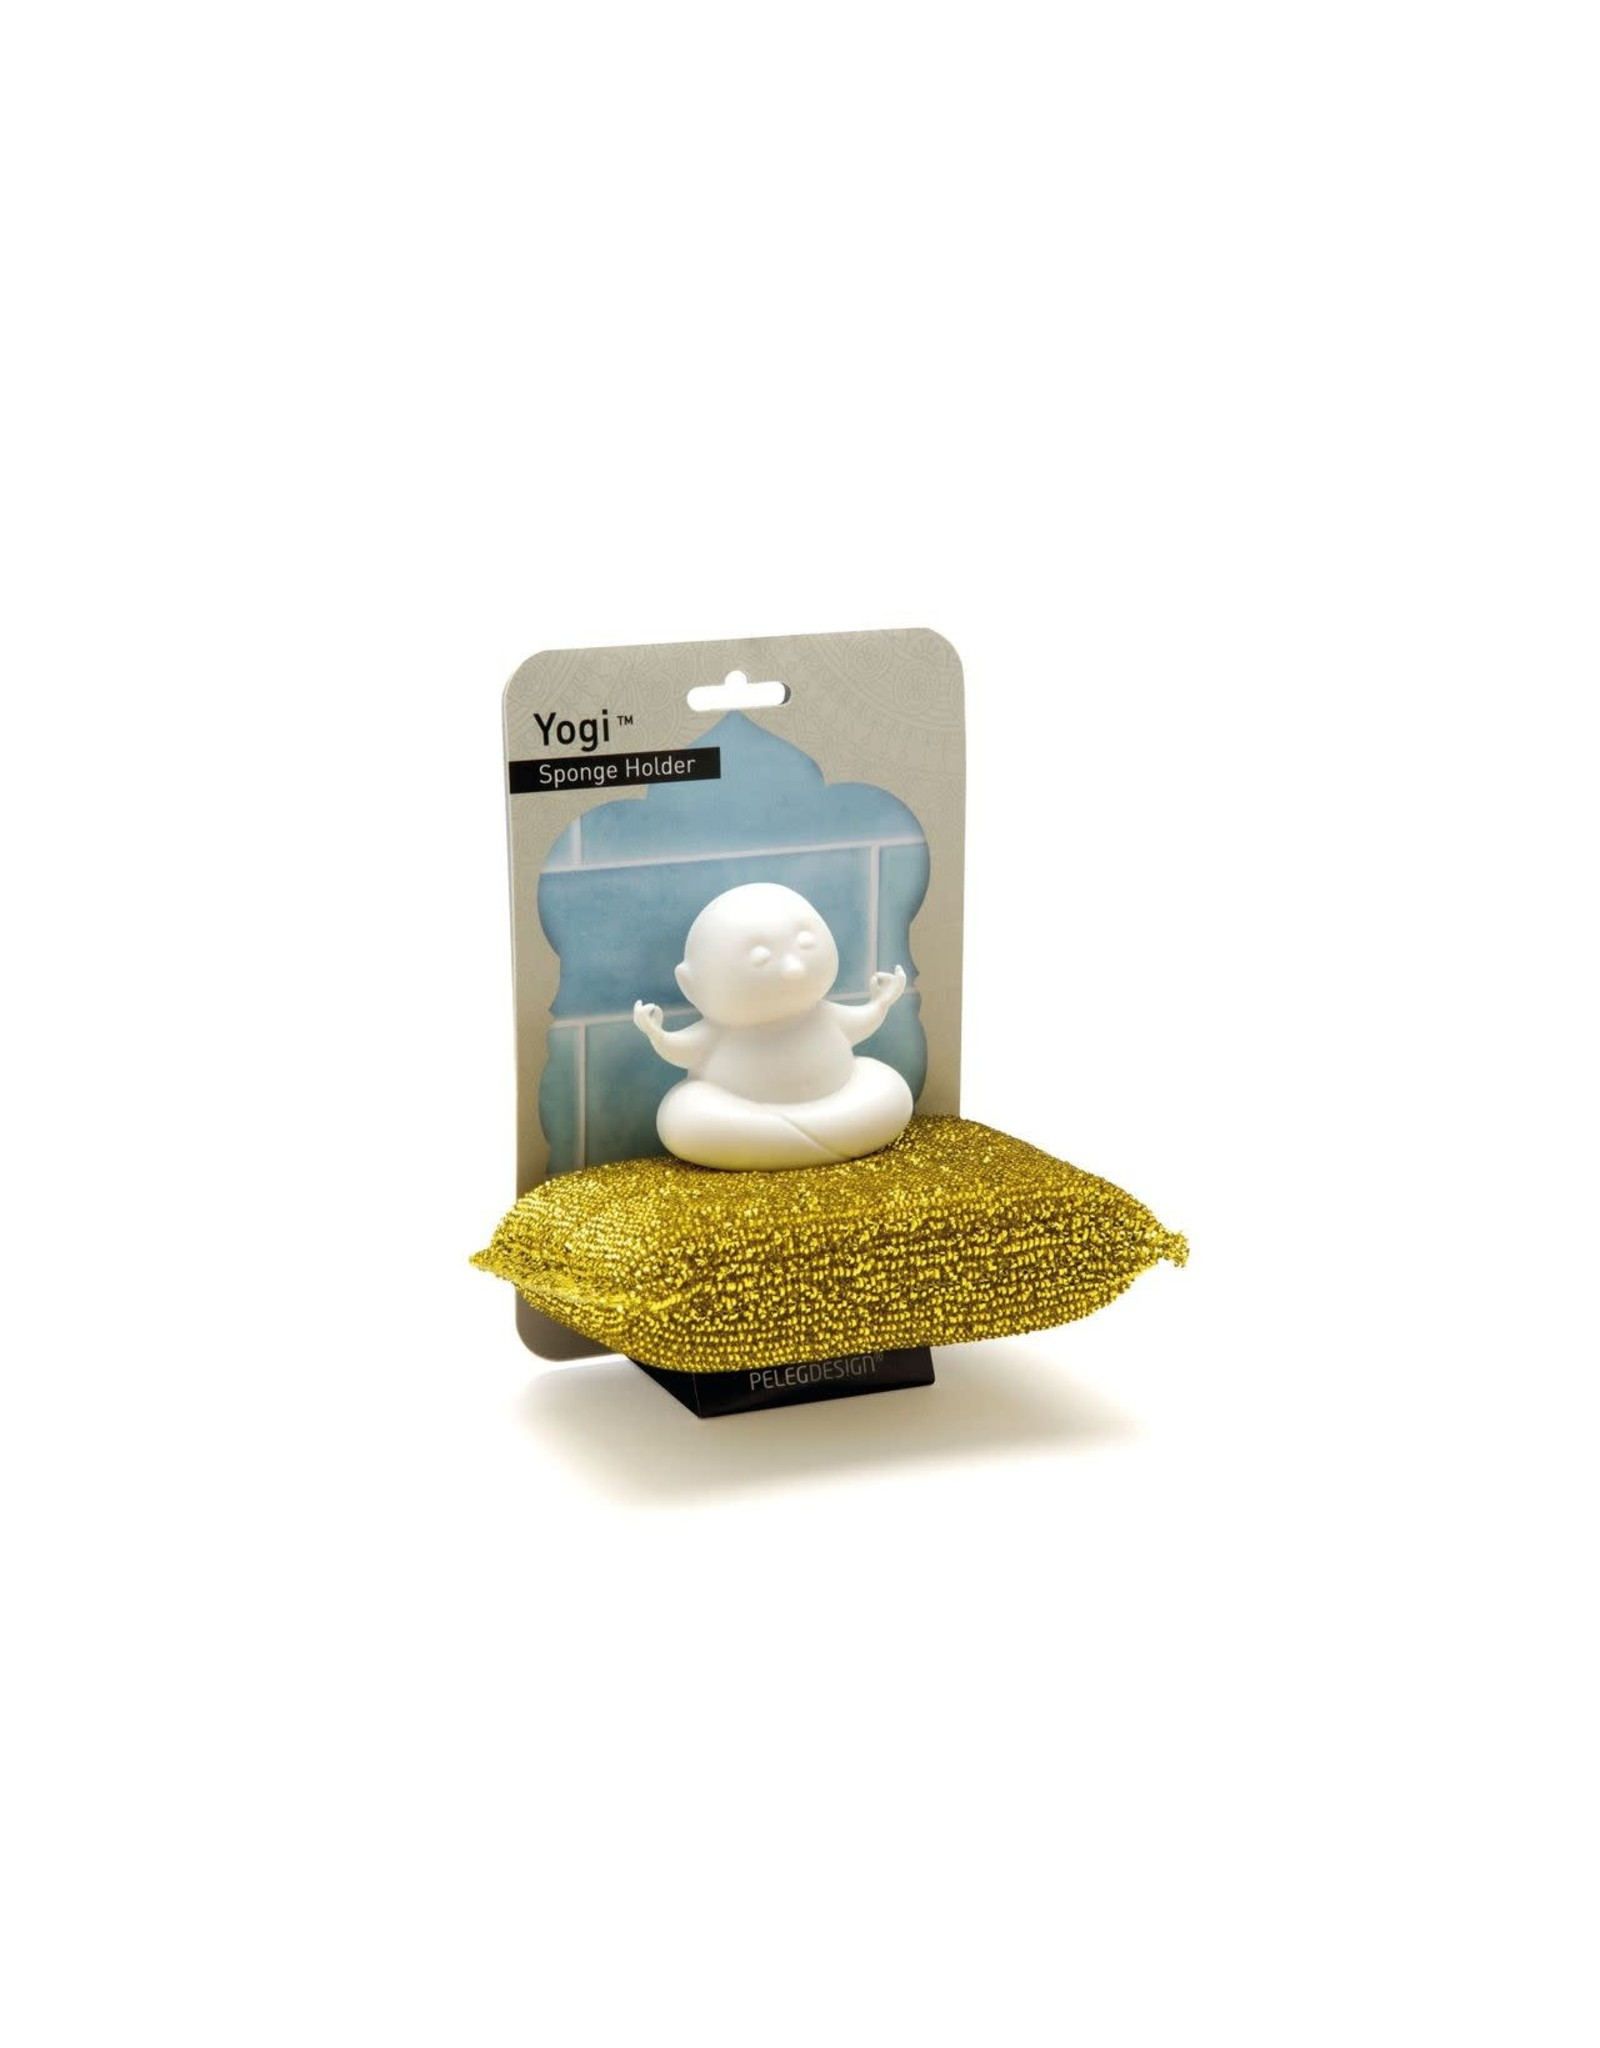 Peleg Design scouring pad with holder in the shape of a yogi